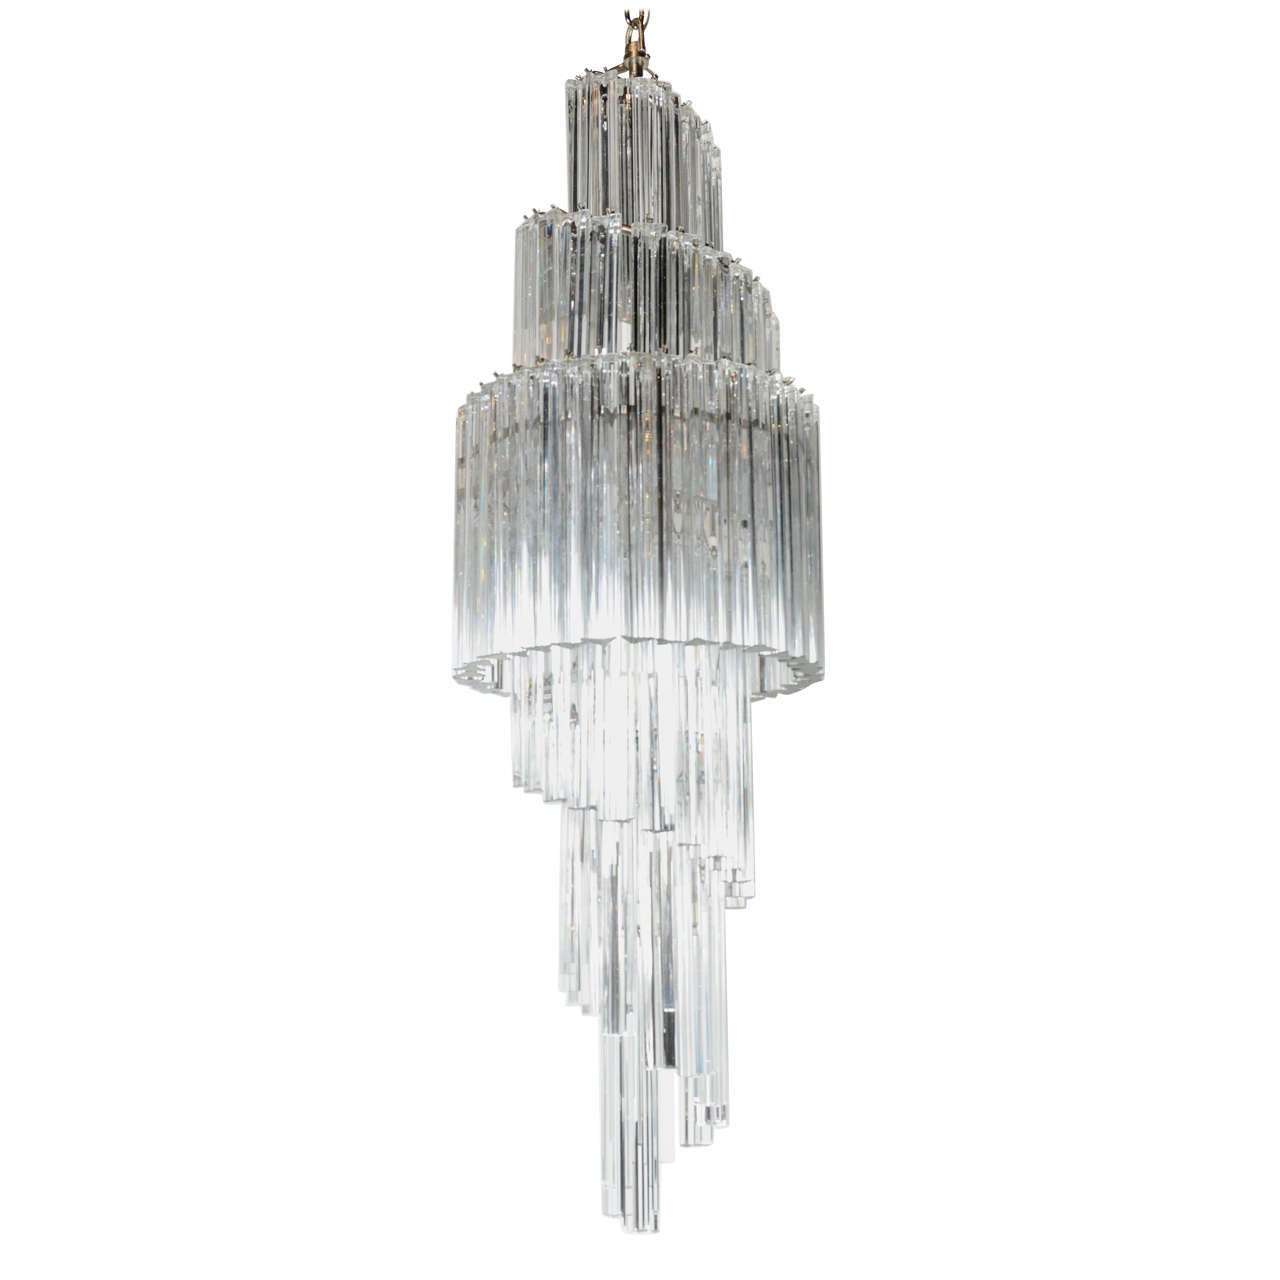 Murano Spiral Chandelier: Spiral Murano Triedre Crystal Chandelier By Camer At 1stdibs